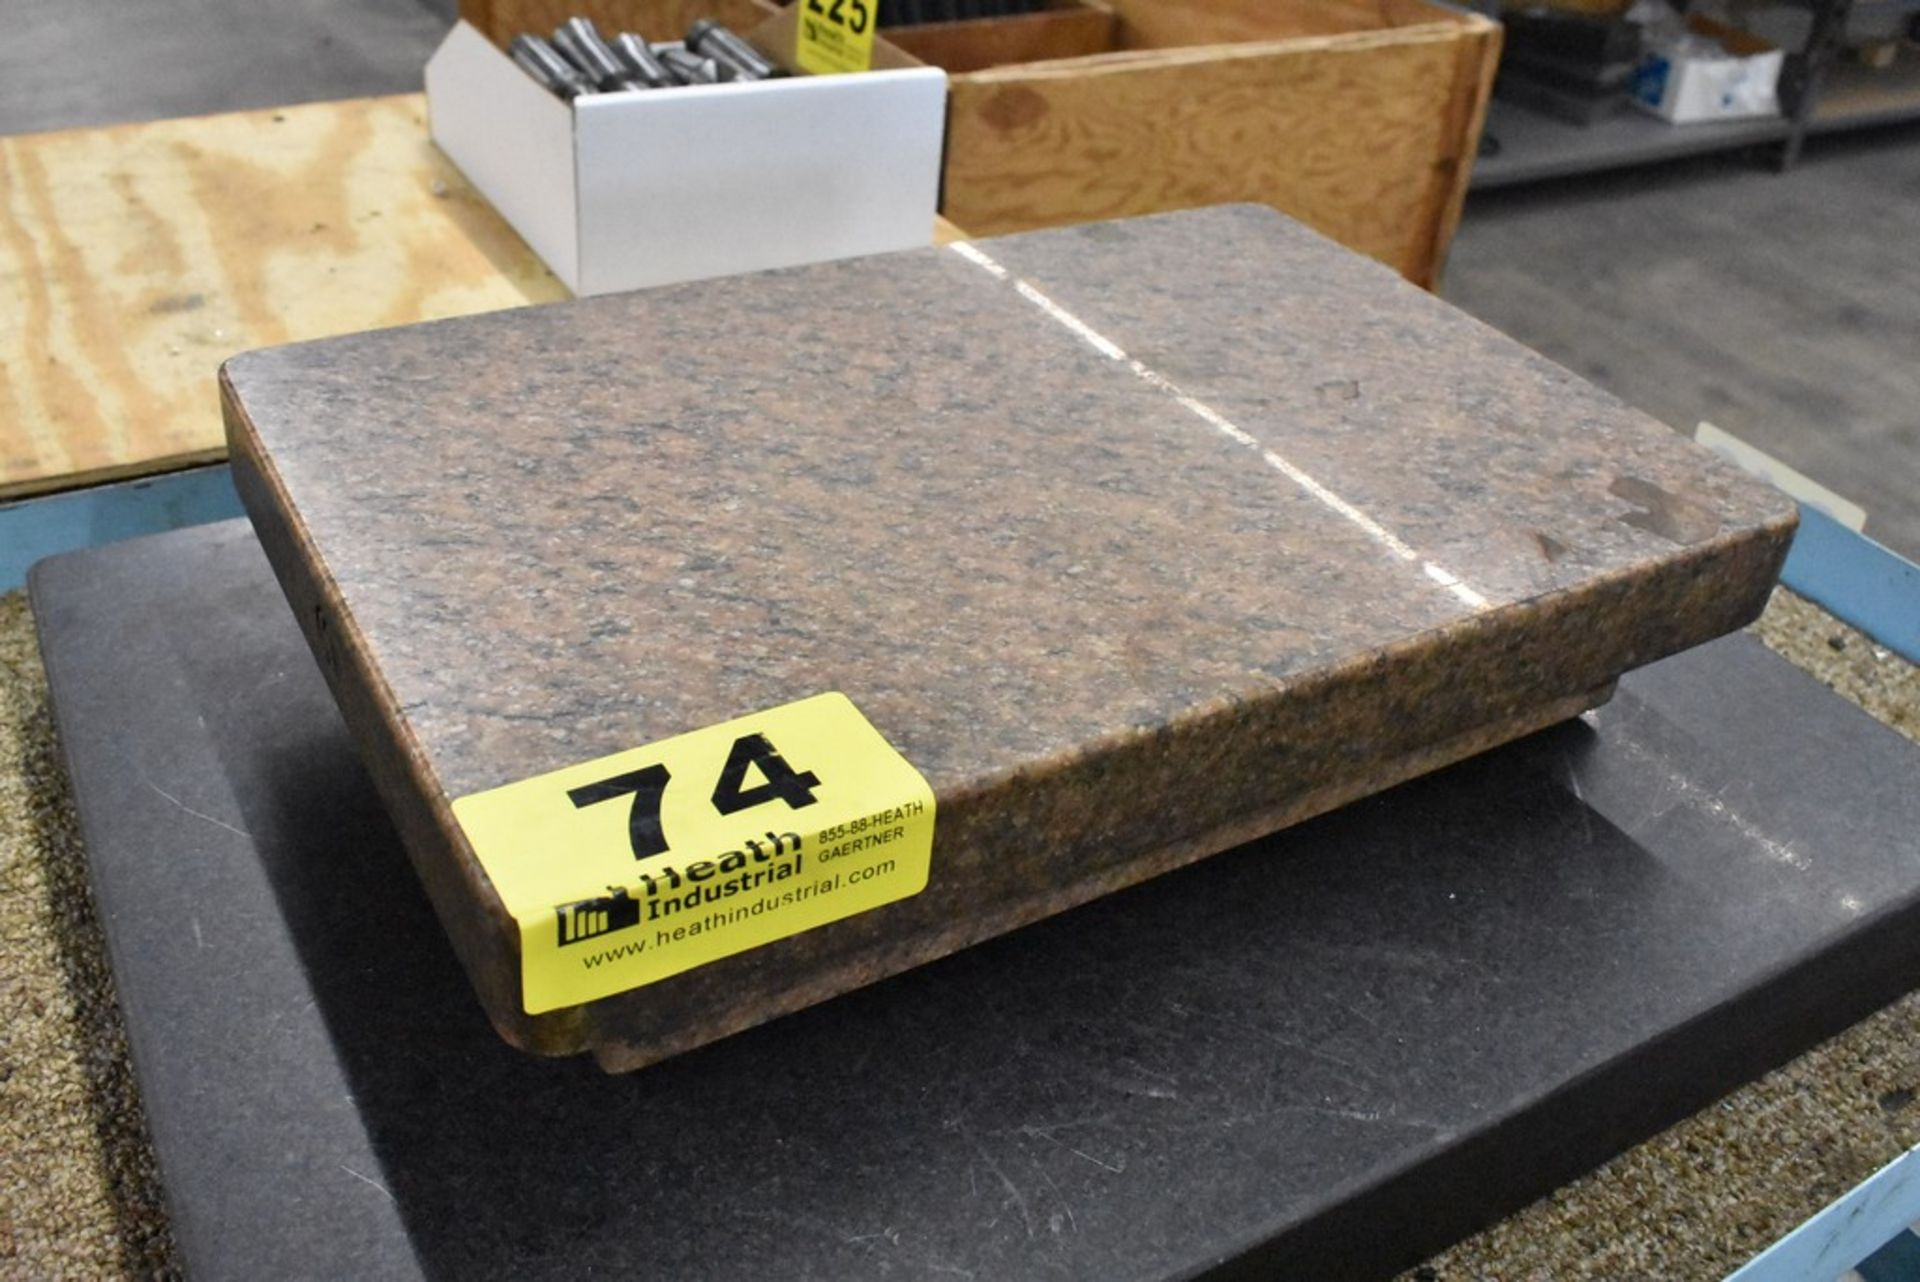 """12"""" X 18"""" FOUR LEDGE CRYSTAL PINK GRANITE SURFACE PLATE - Image 2 of 2"""